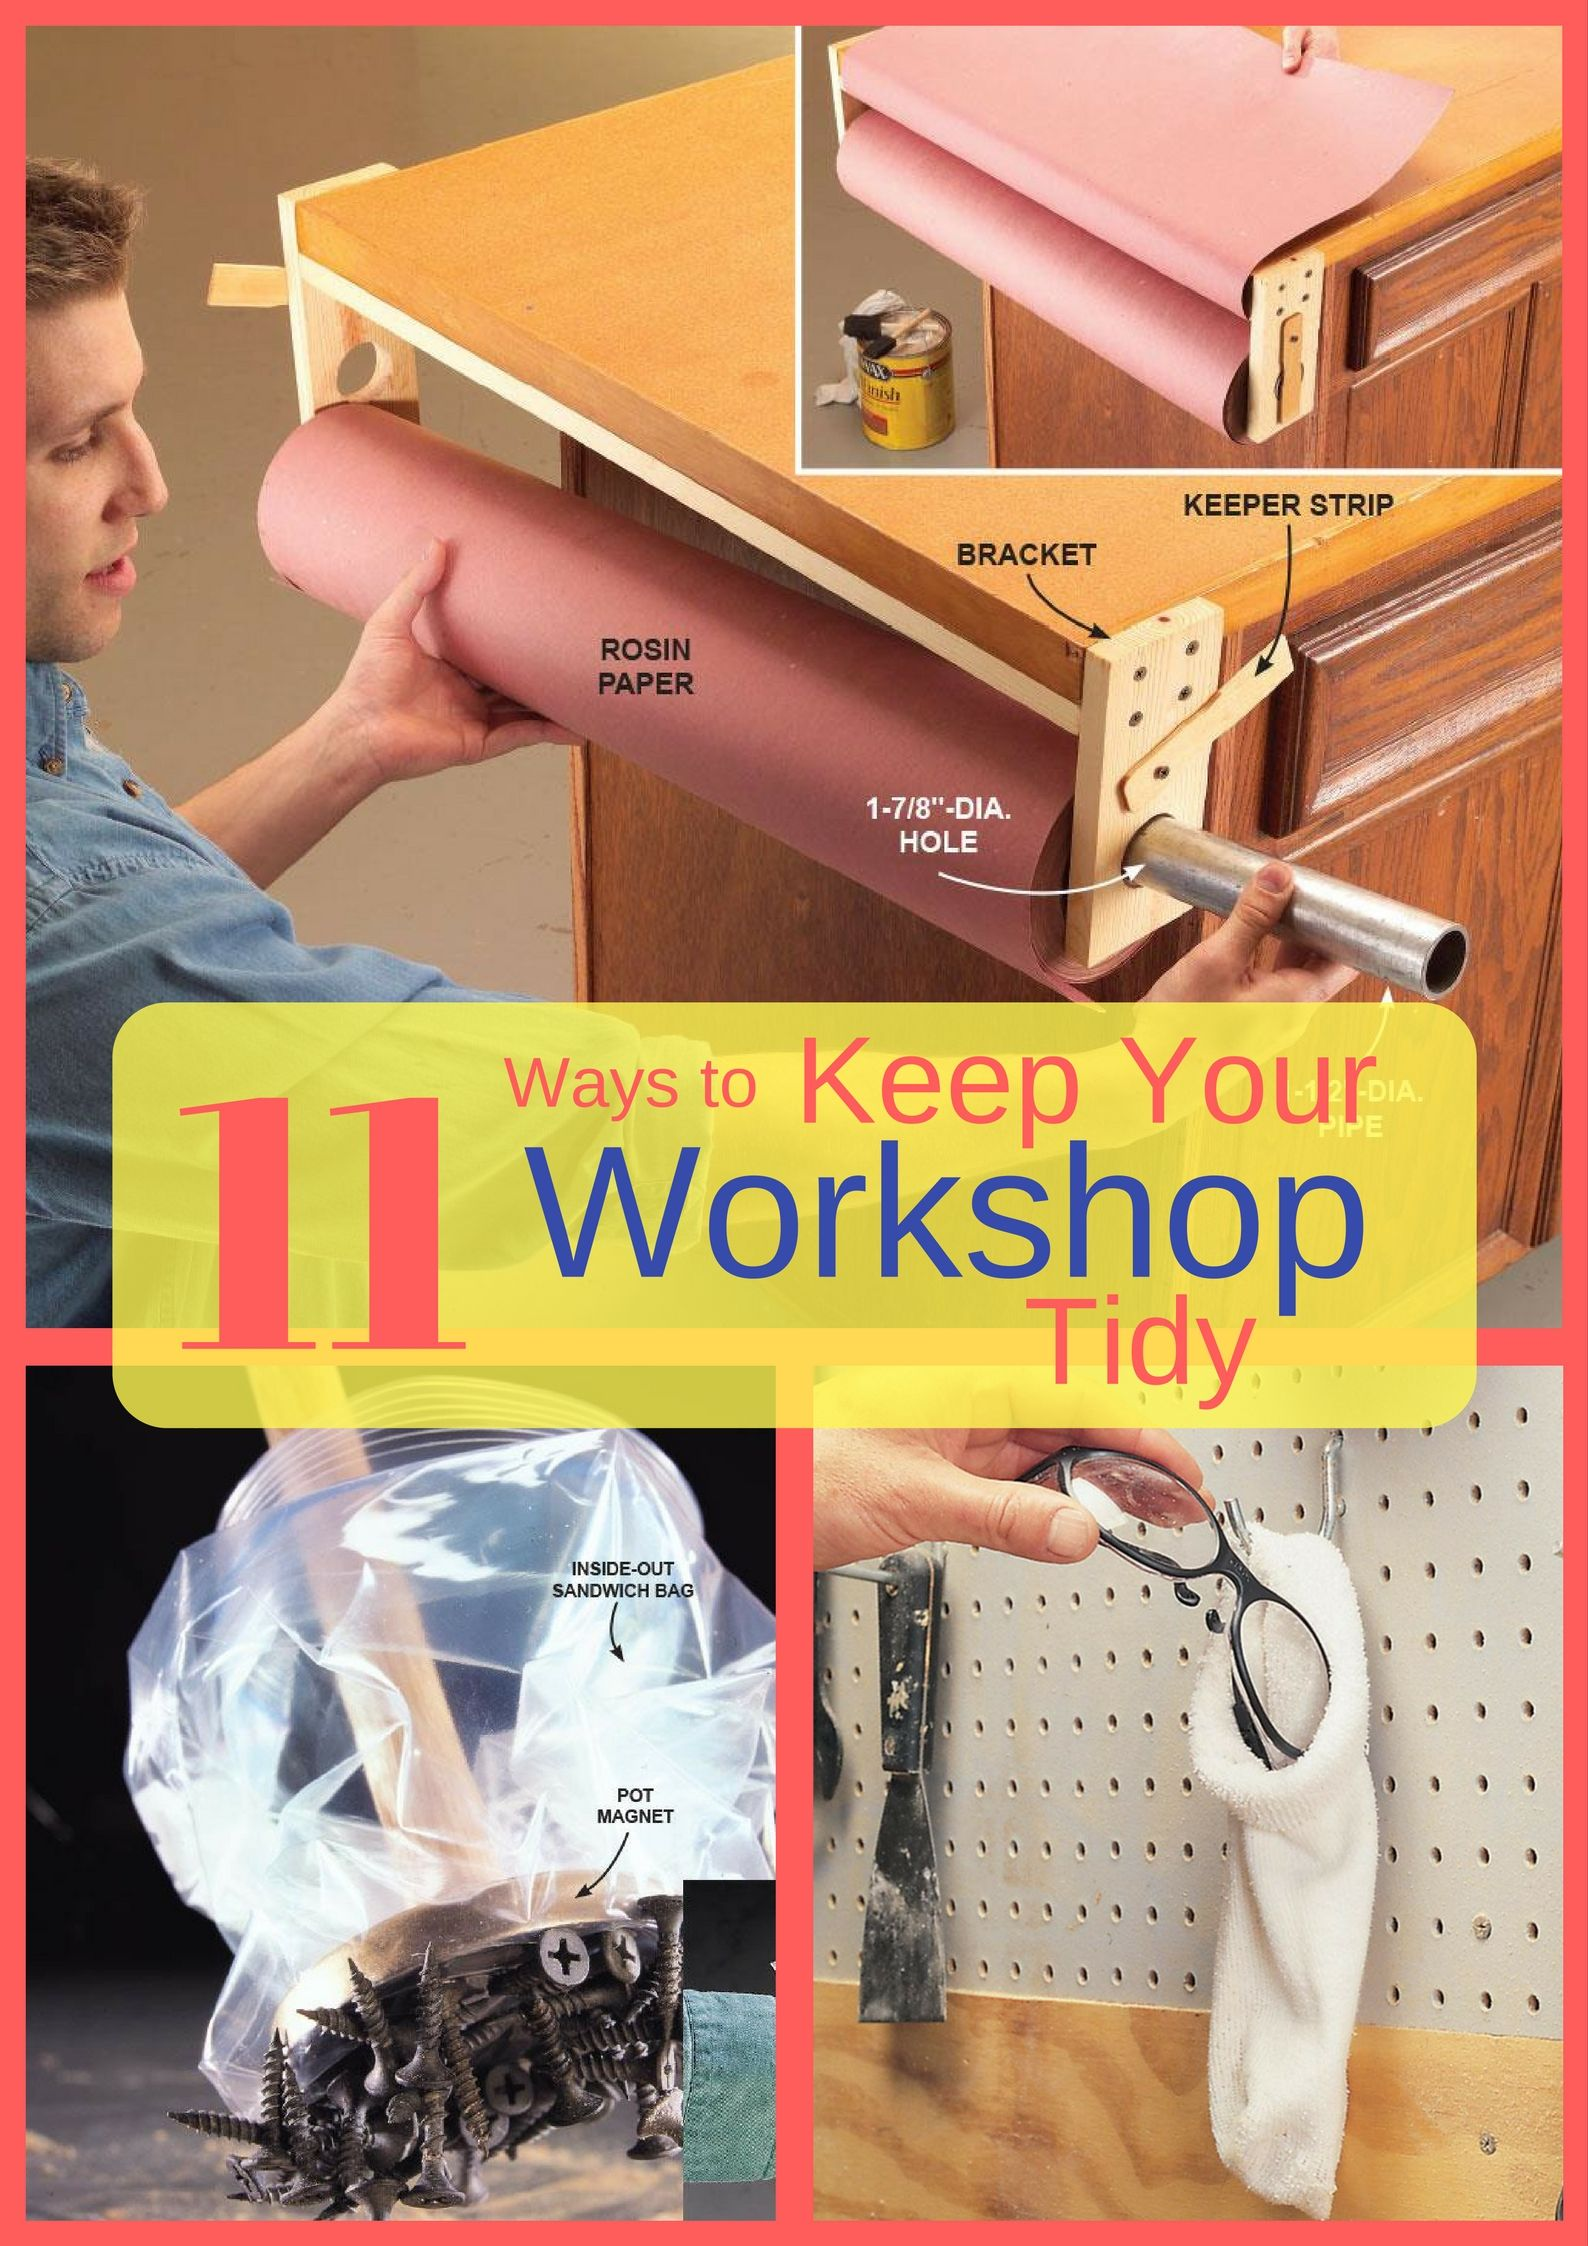 Make your time in the workshop more productive by keeping it clean and clutter-free with these tried-and-true tips.